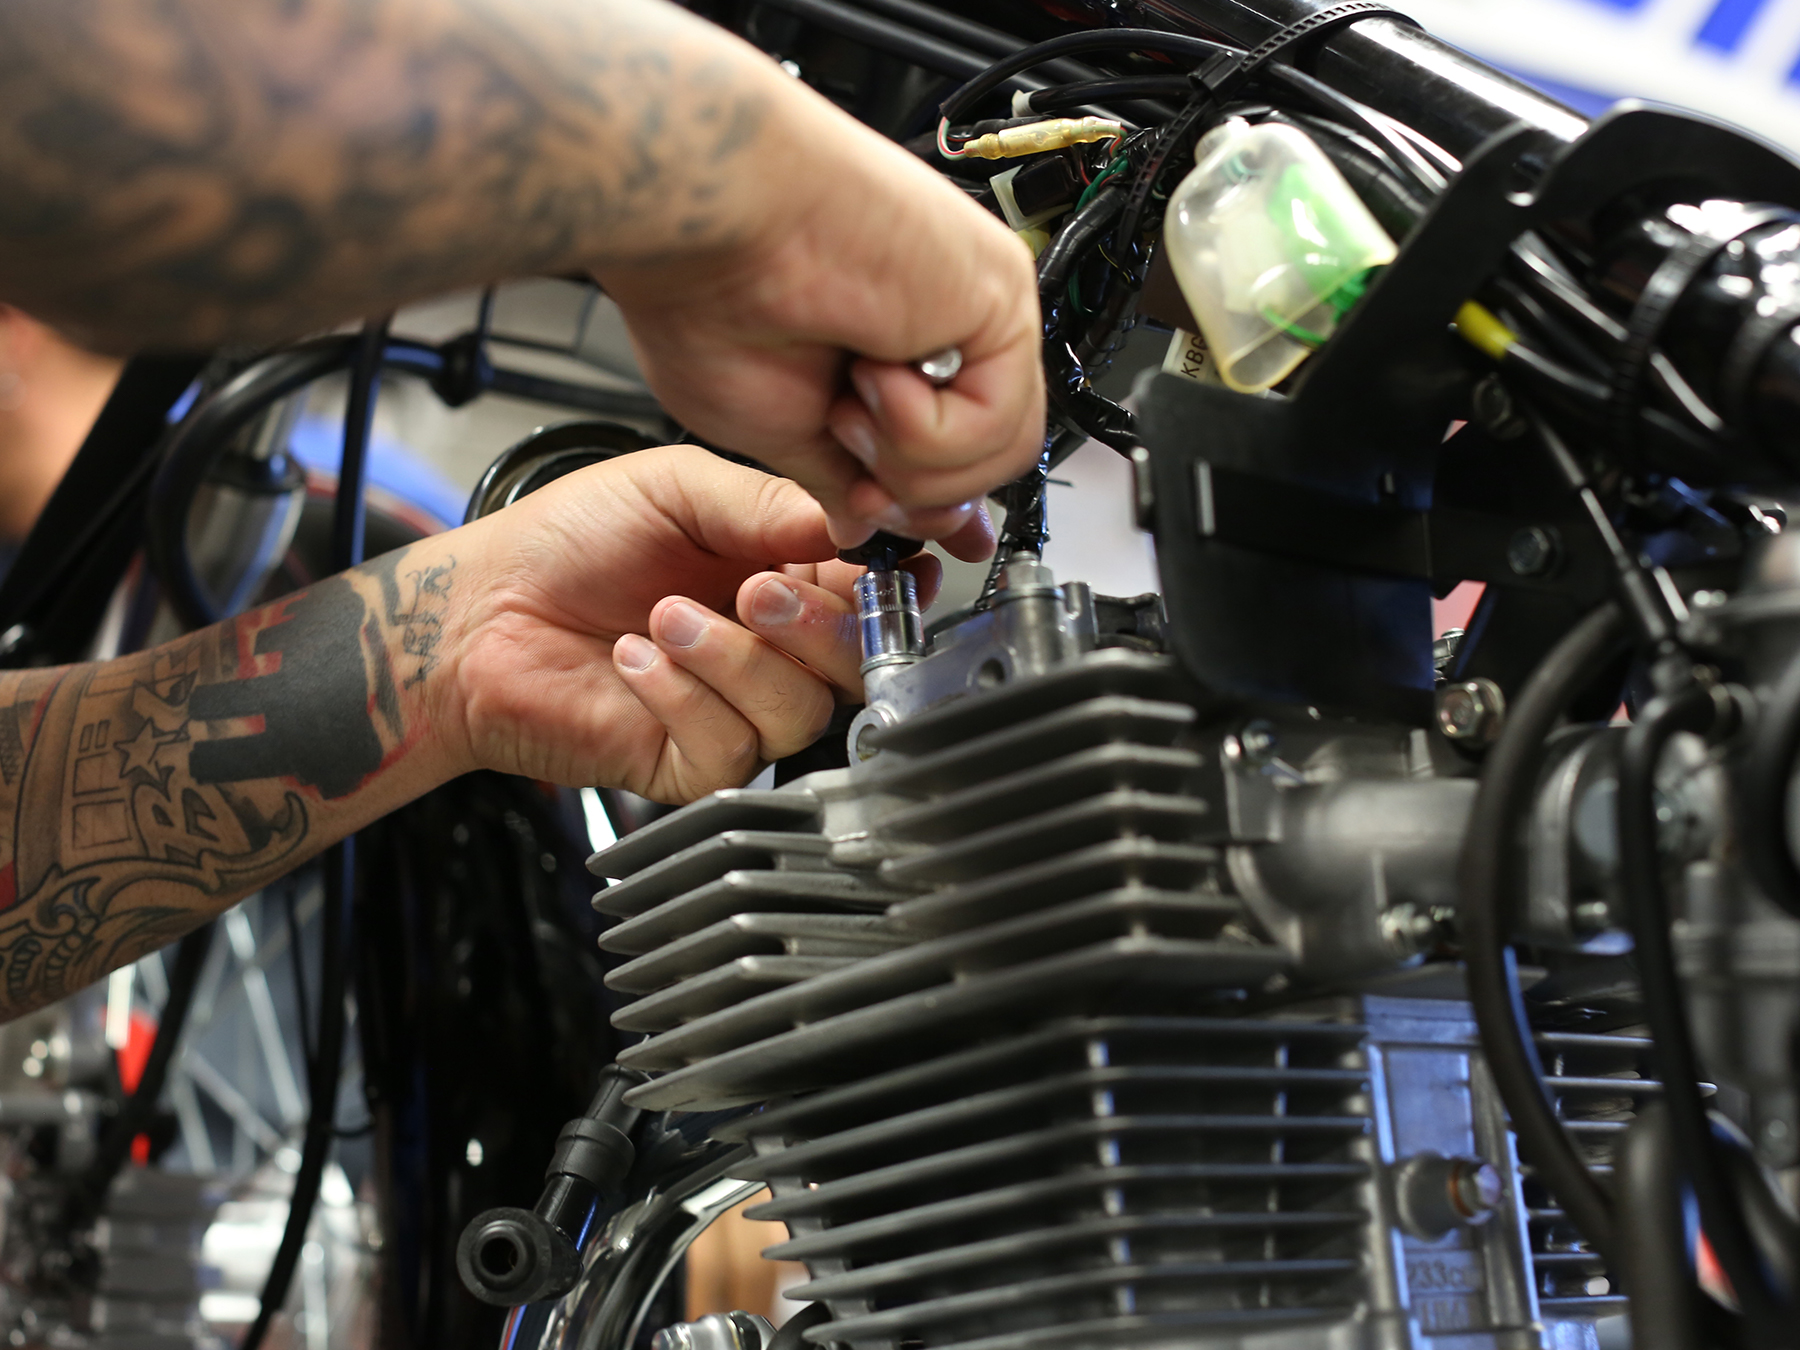 Close up of MMI student hands working on a motorcycle engine